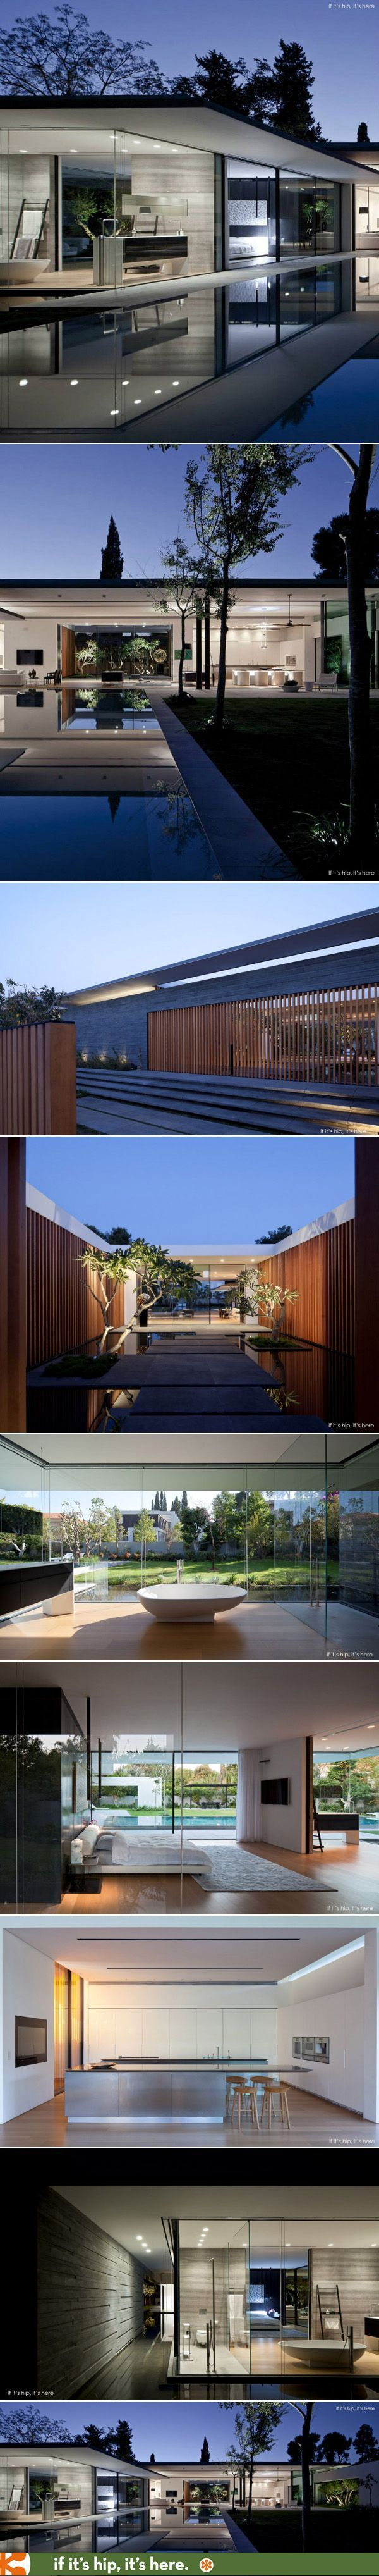 Minimal and modern architecture